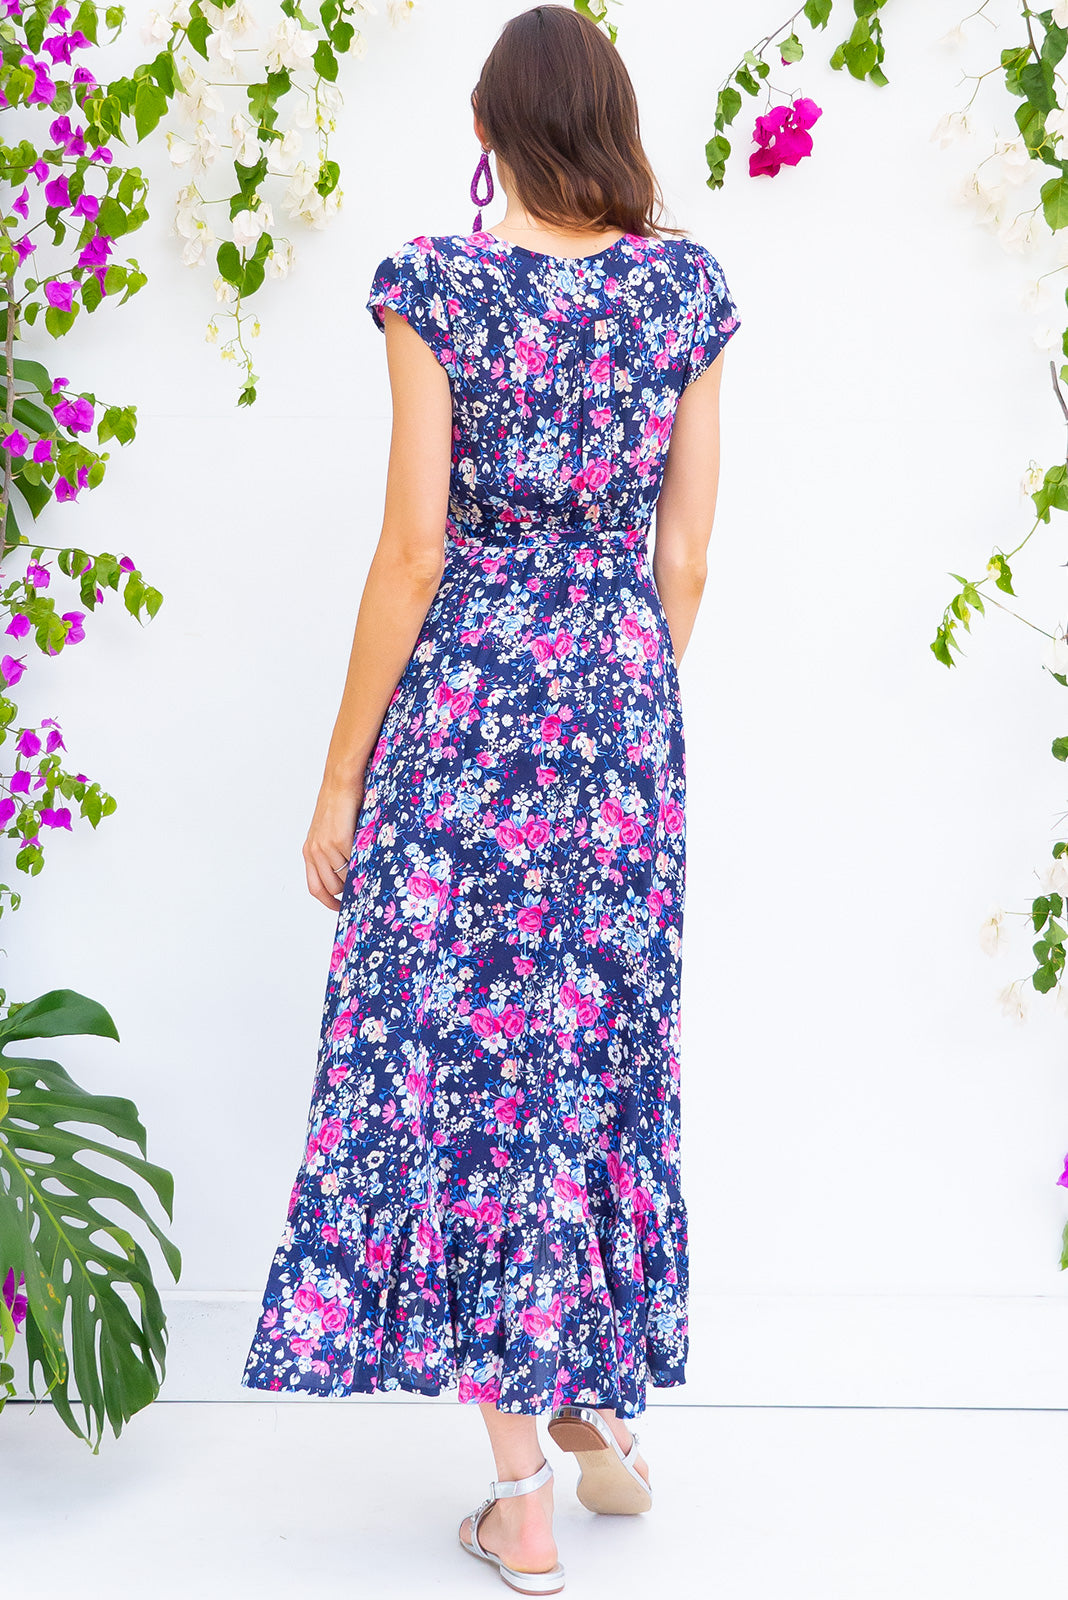 Symphony Blue Curacao Maxi Wrap Dress with a fitted bodice, cap sleeve and frill around the hem in a bright lapis blue floral print on soft rayon